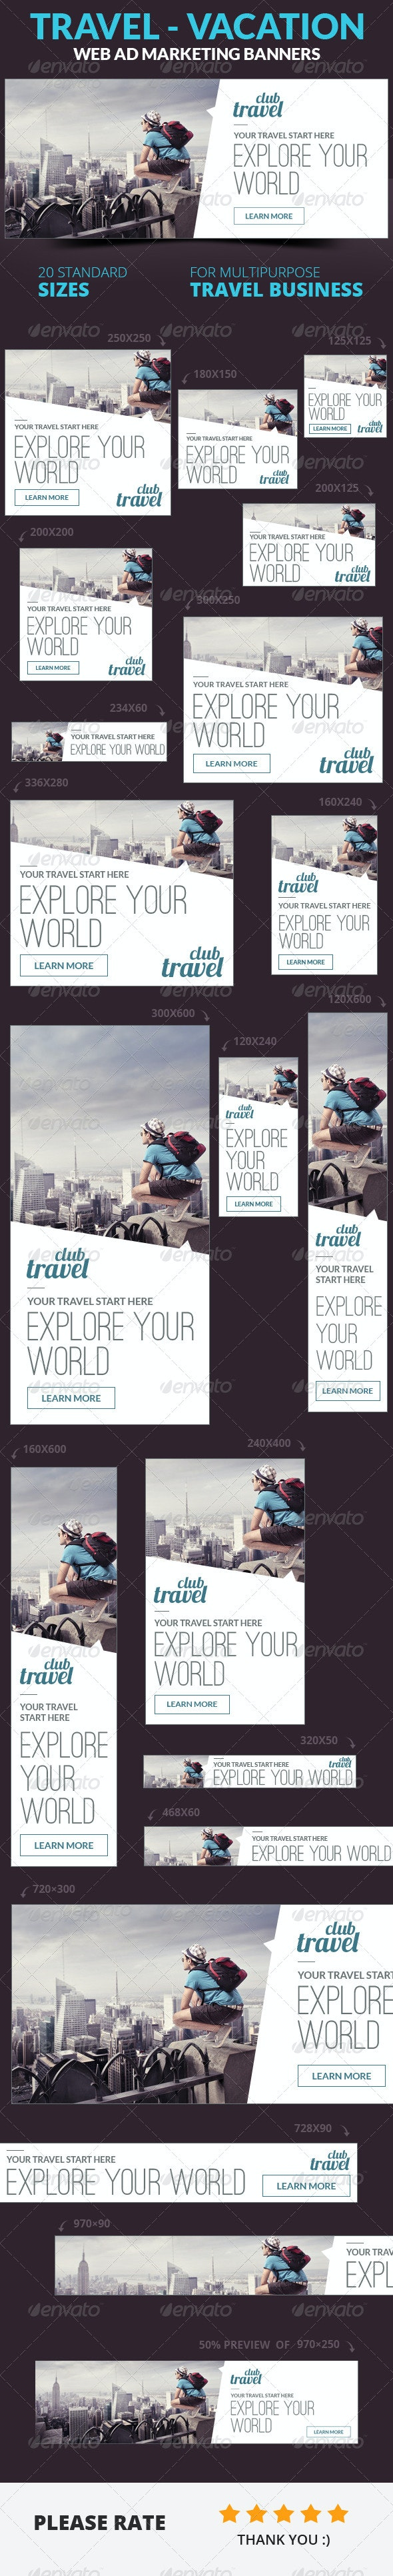 Travel - Vacation Web Ad Marketing Banners - Banners & Ads Web Elements